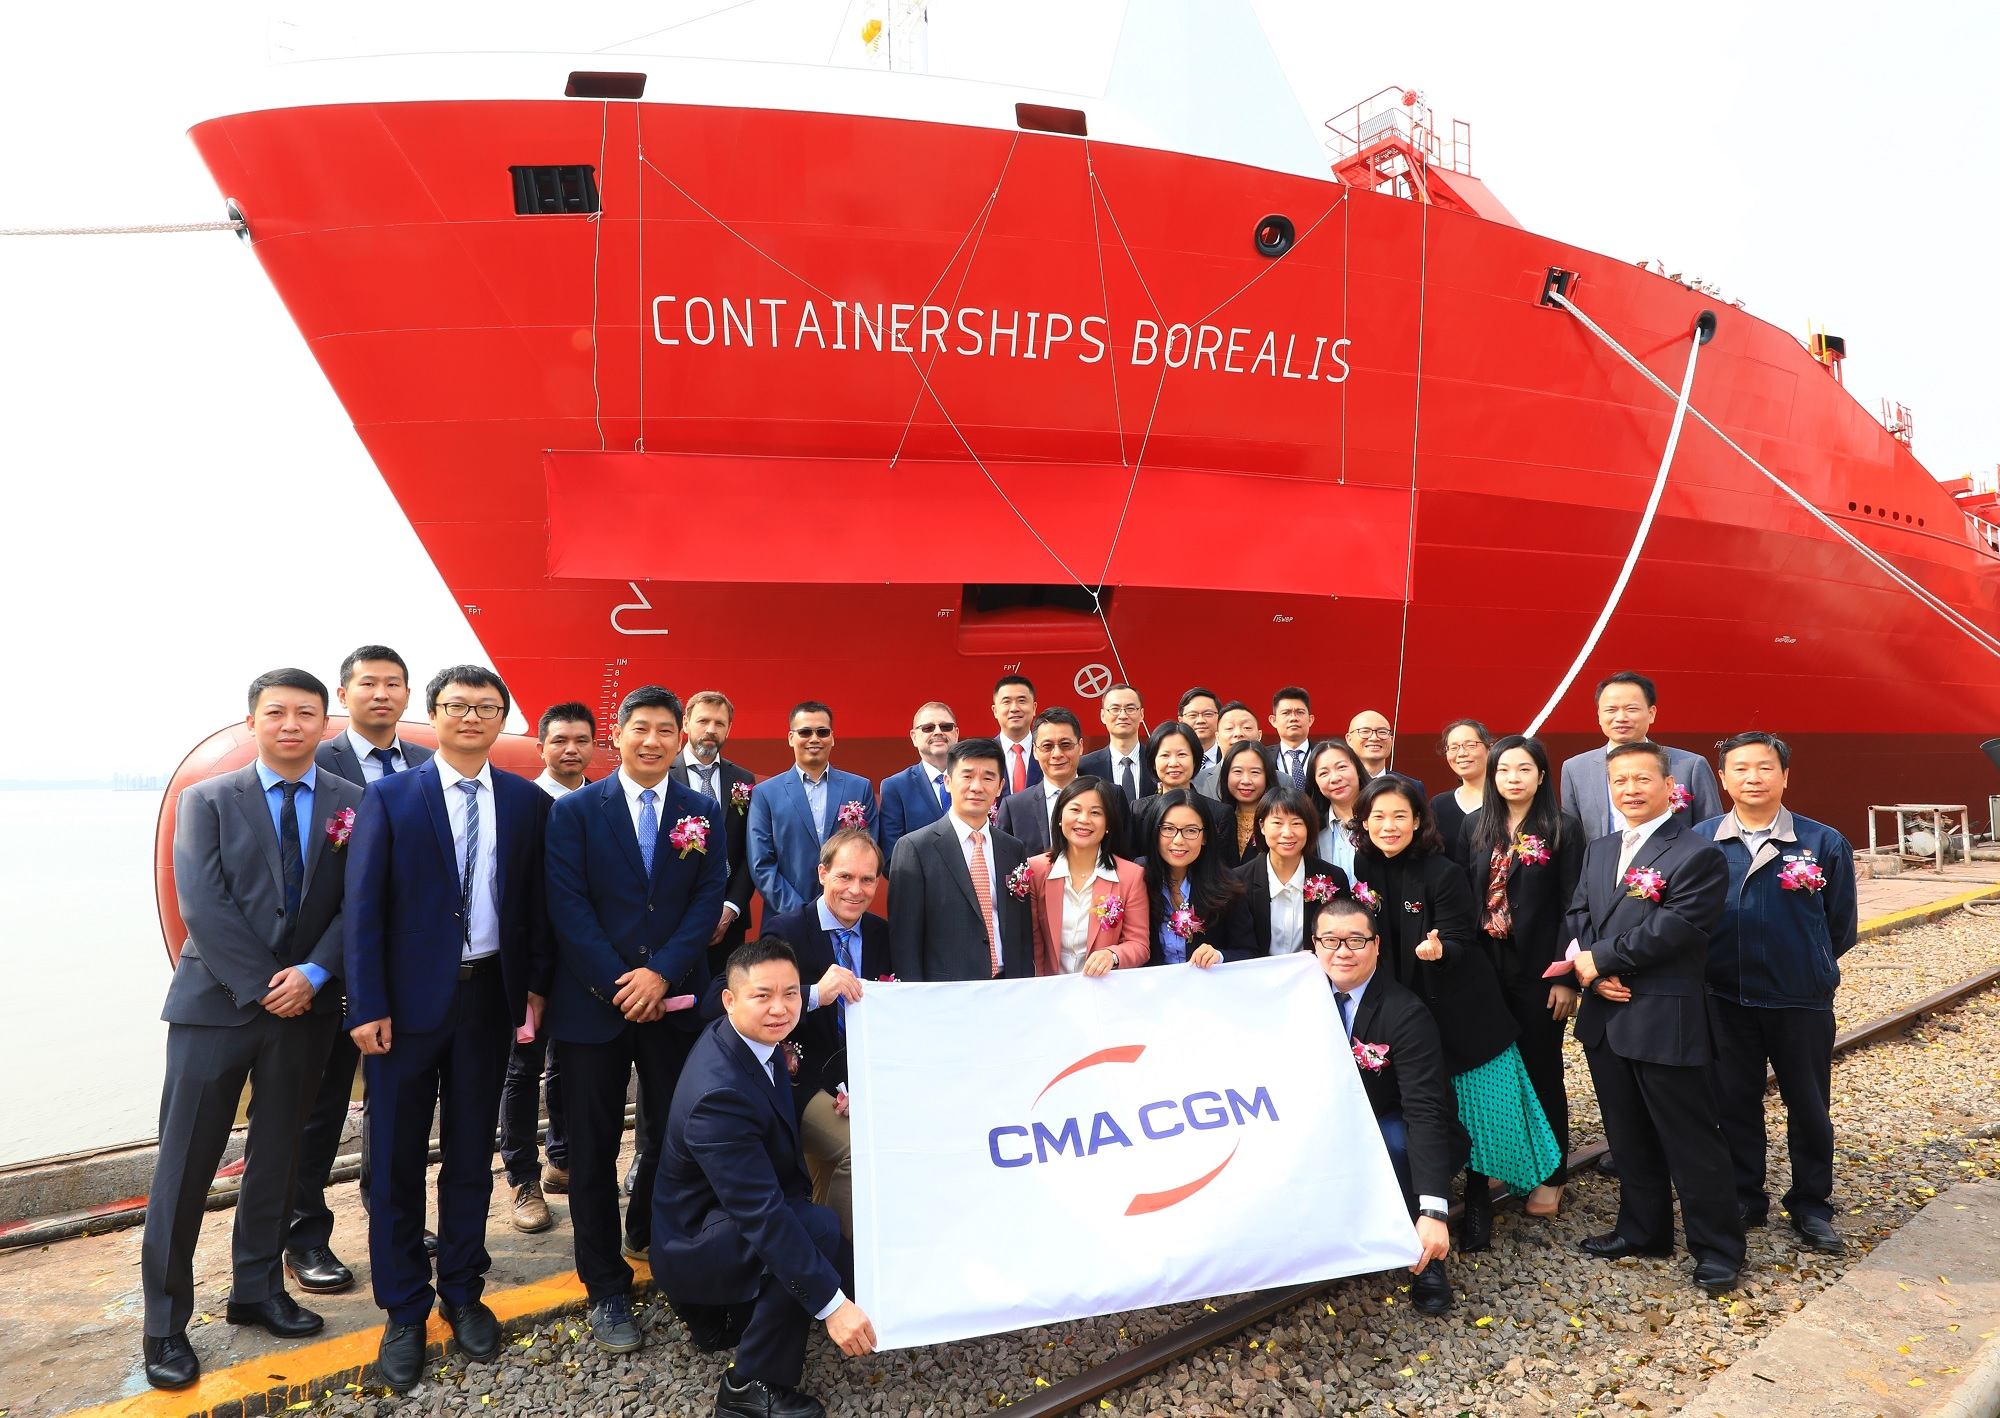 Newest LNG-powered vessel of CMA CGM completes maiden voyage